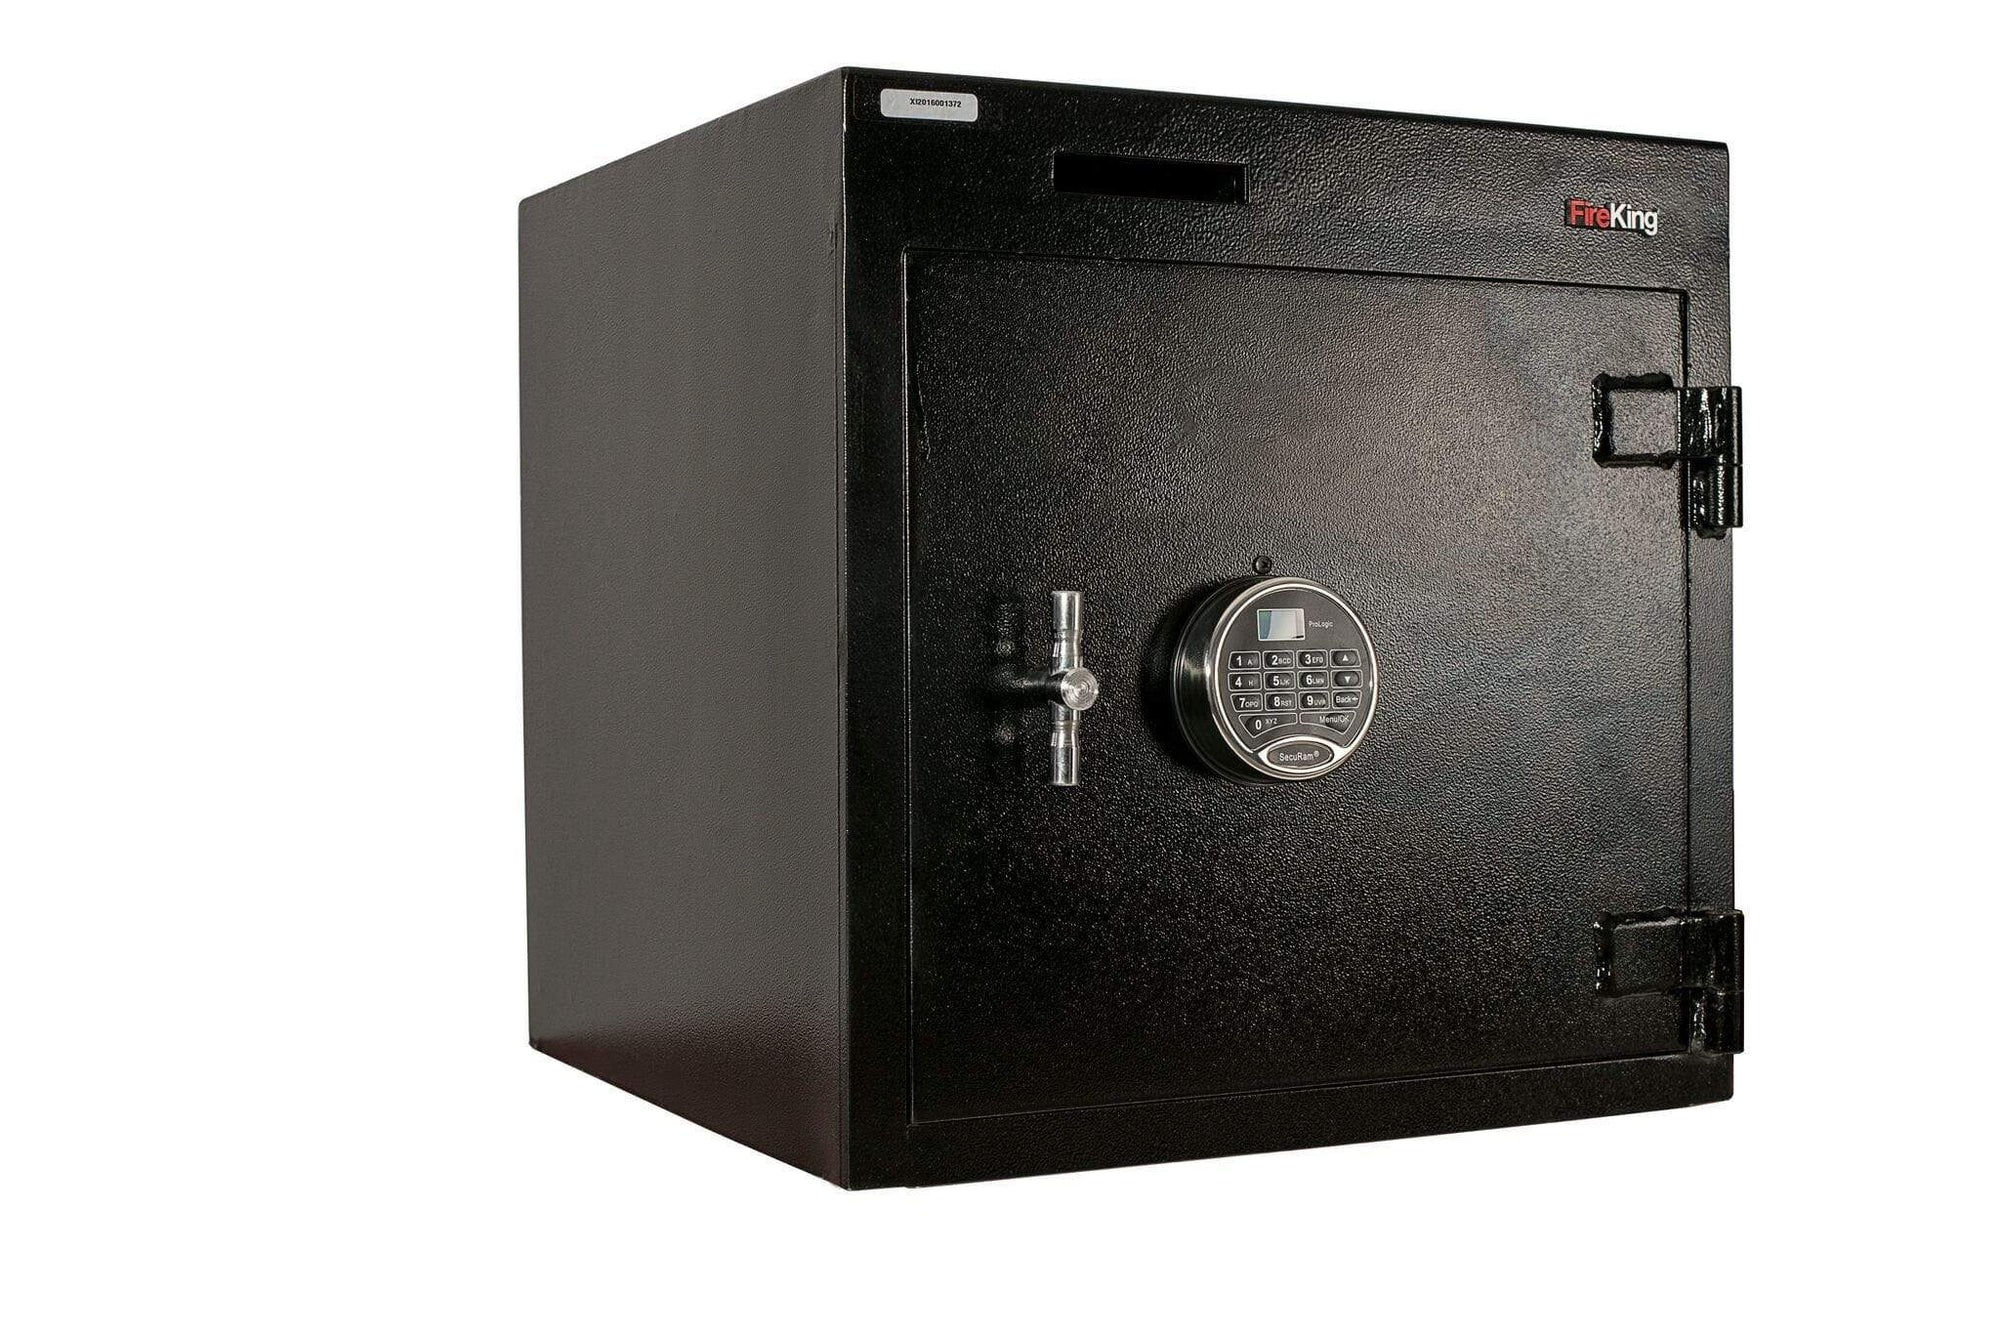 Fireking B2020S Single Door Deposit Slot Safe Armadillo Safe and Vault